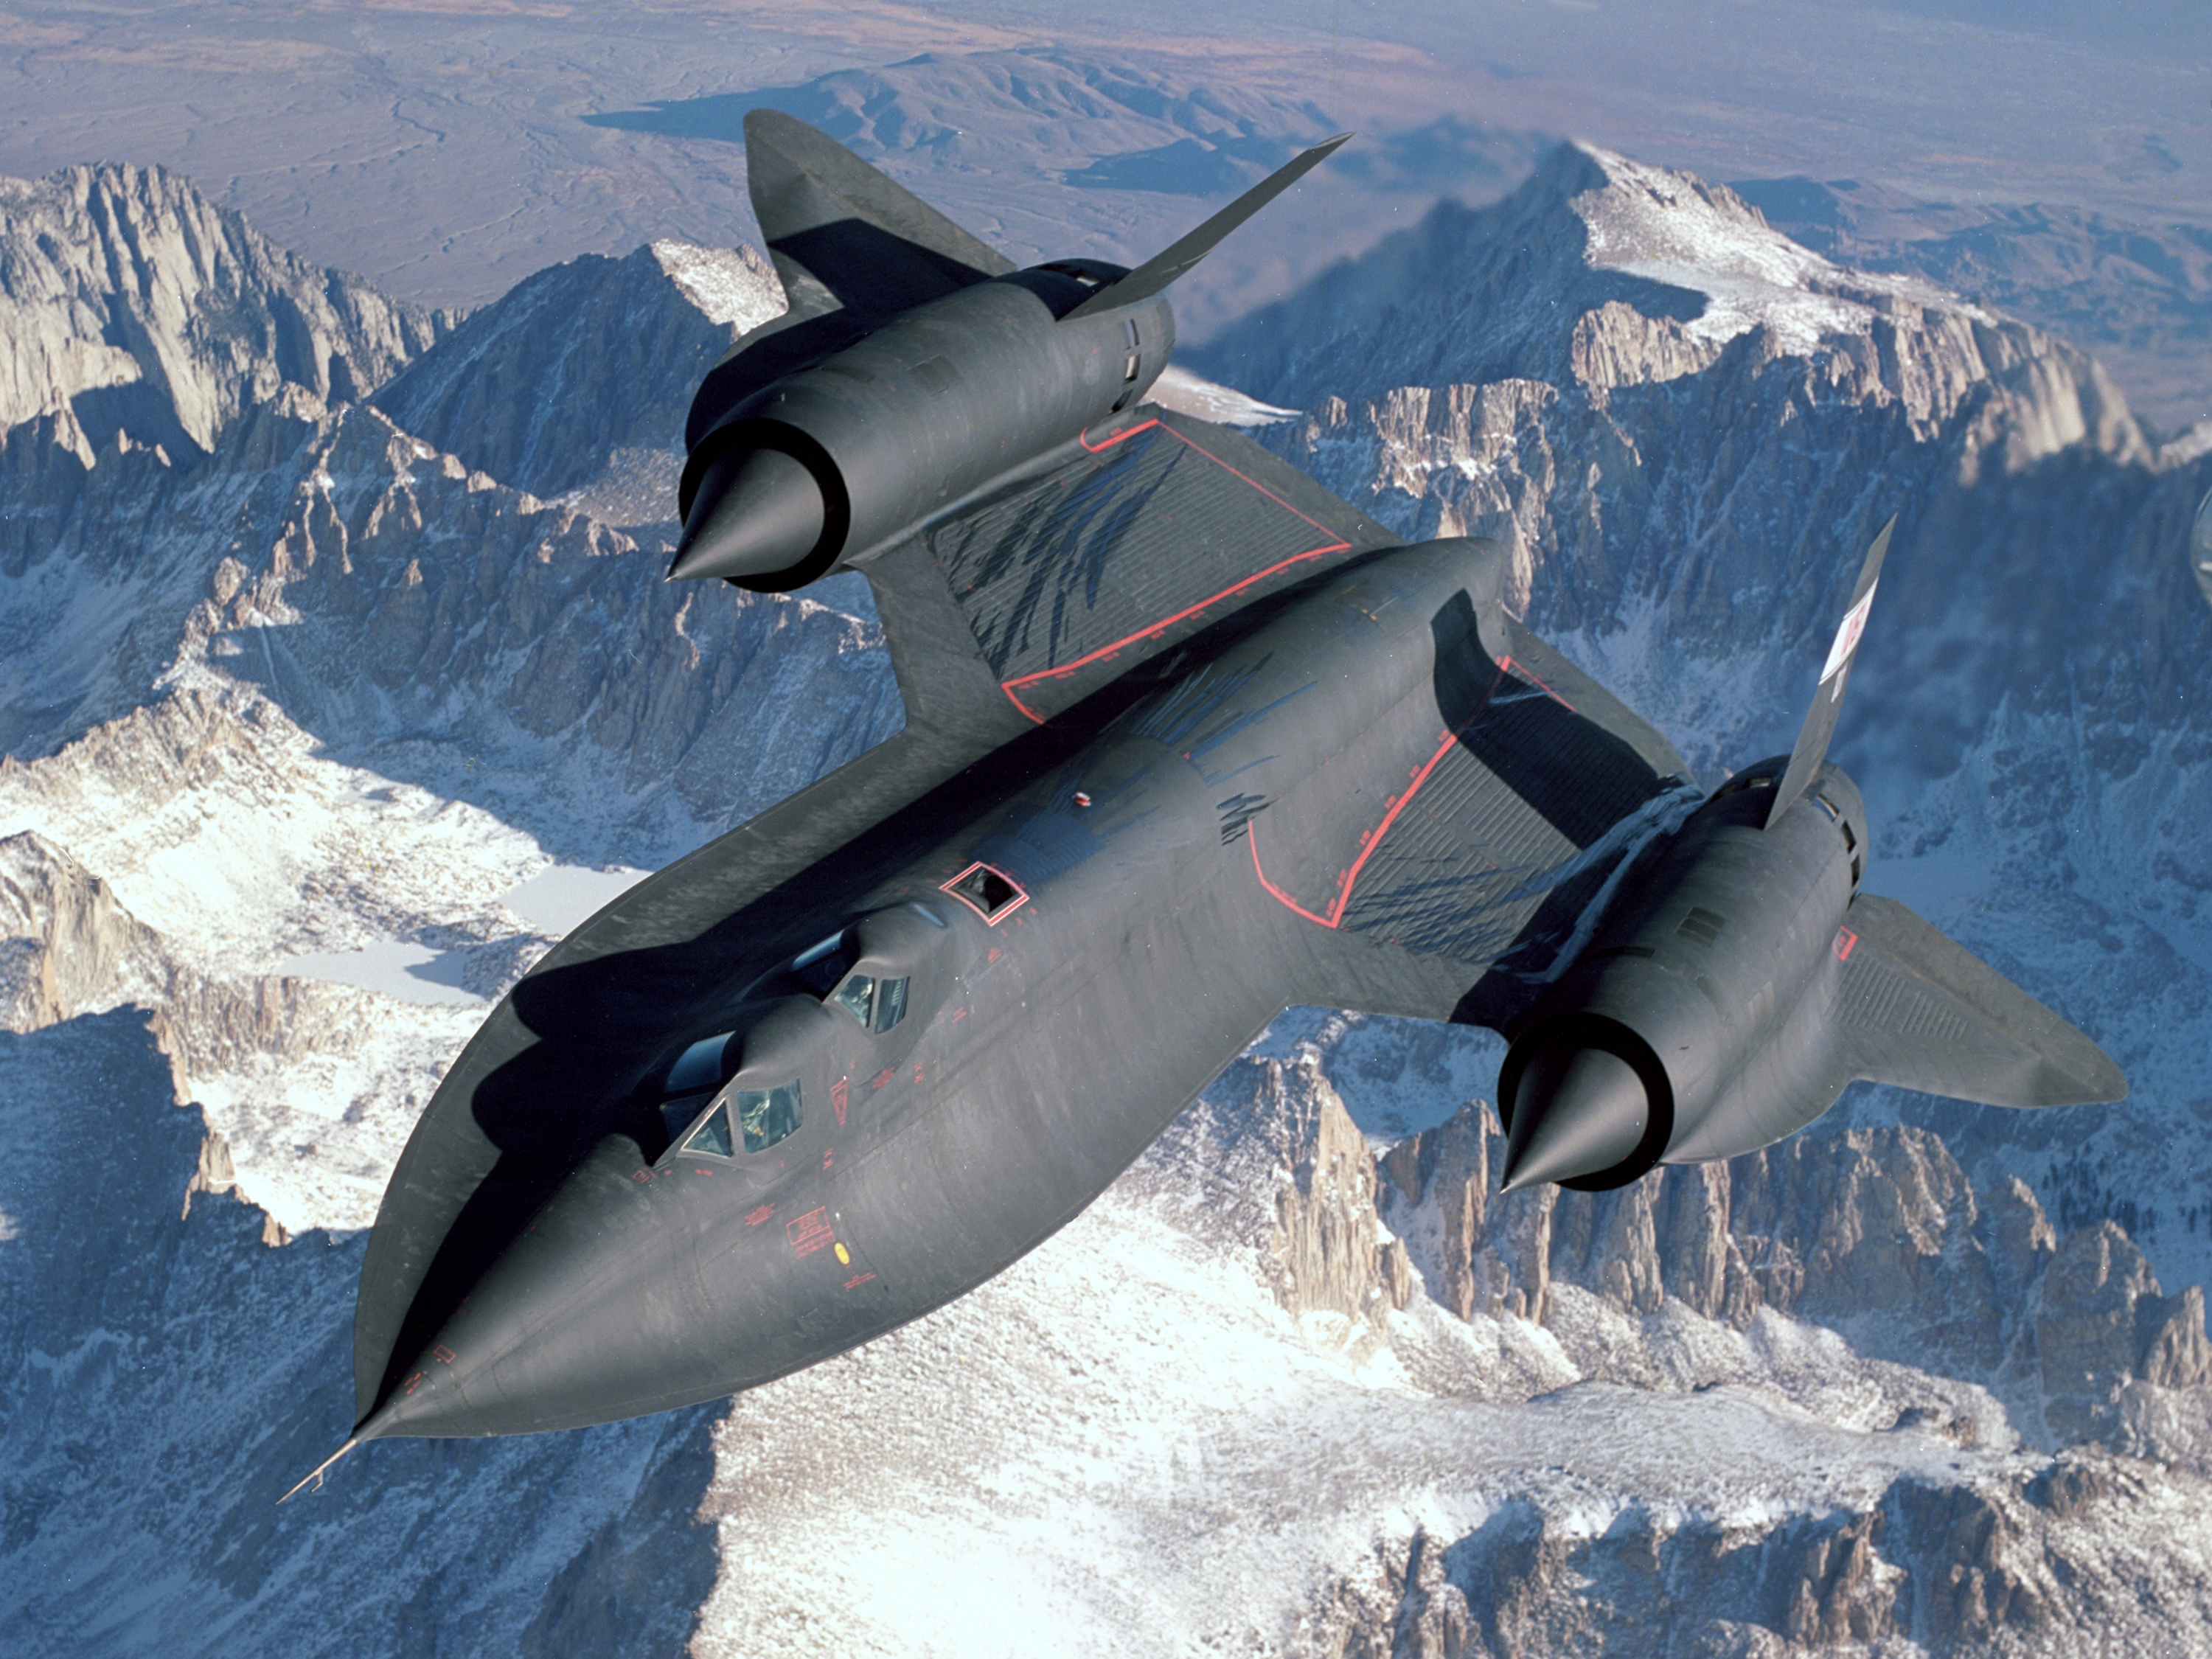 Lockheed sr 71 blackbird computer wallpapers desktop - Sr 71 wallpaper ...